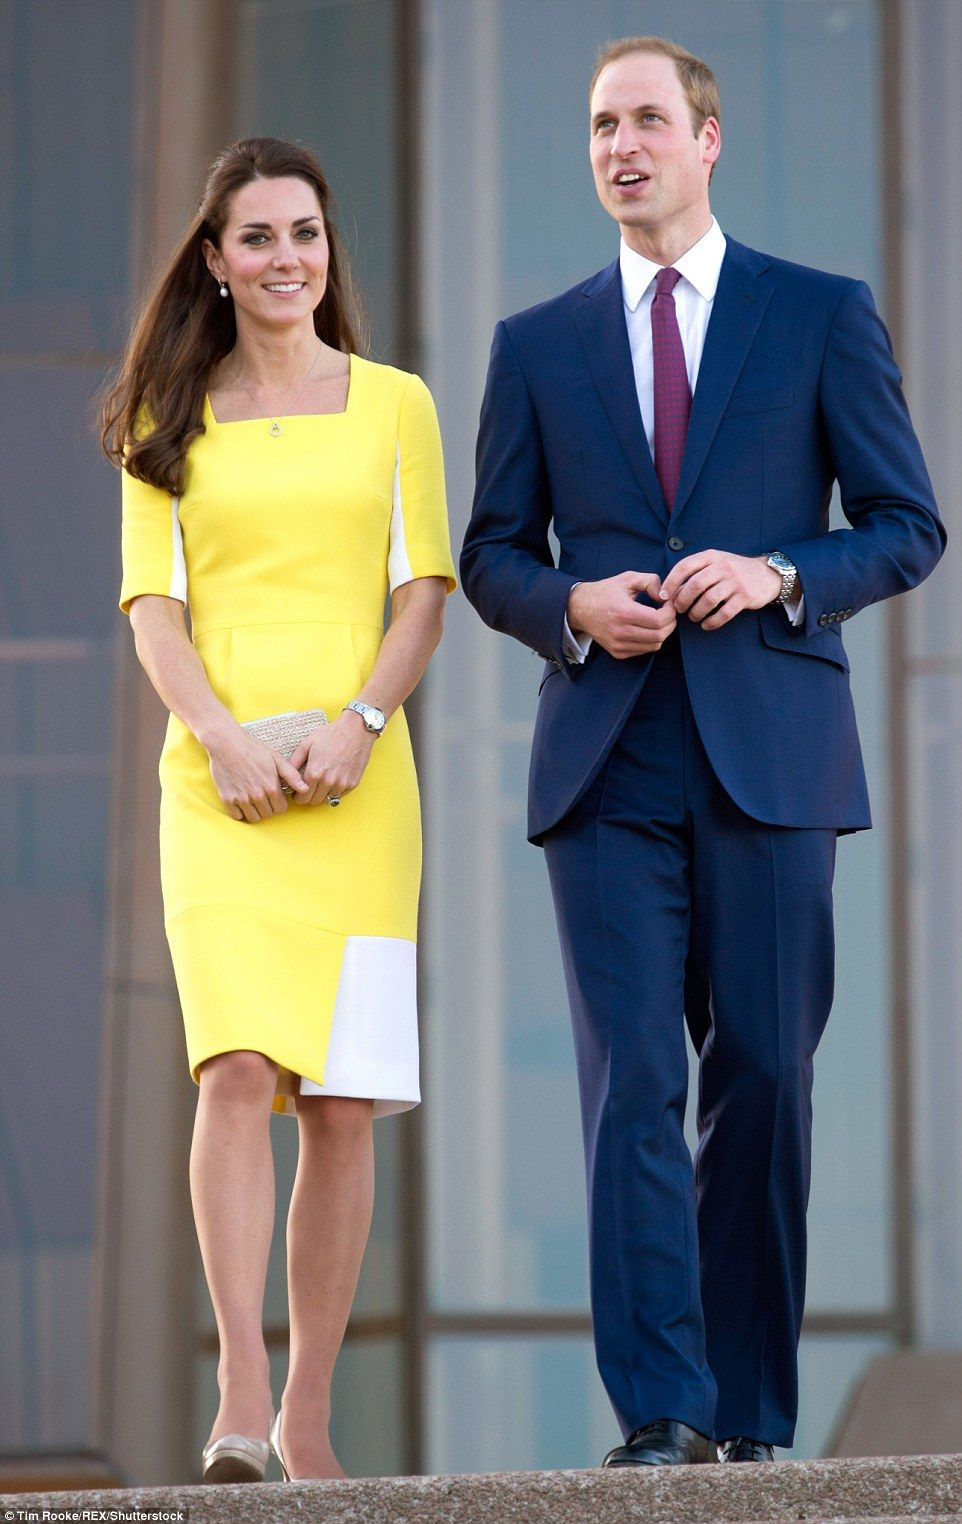 Kate first wore the colour block dress on a visit to Sydney Opera House with Prince William during the couple's tour of Australia in 2014